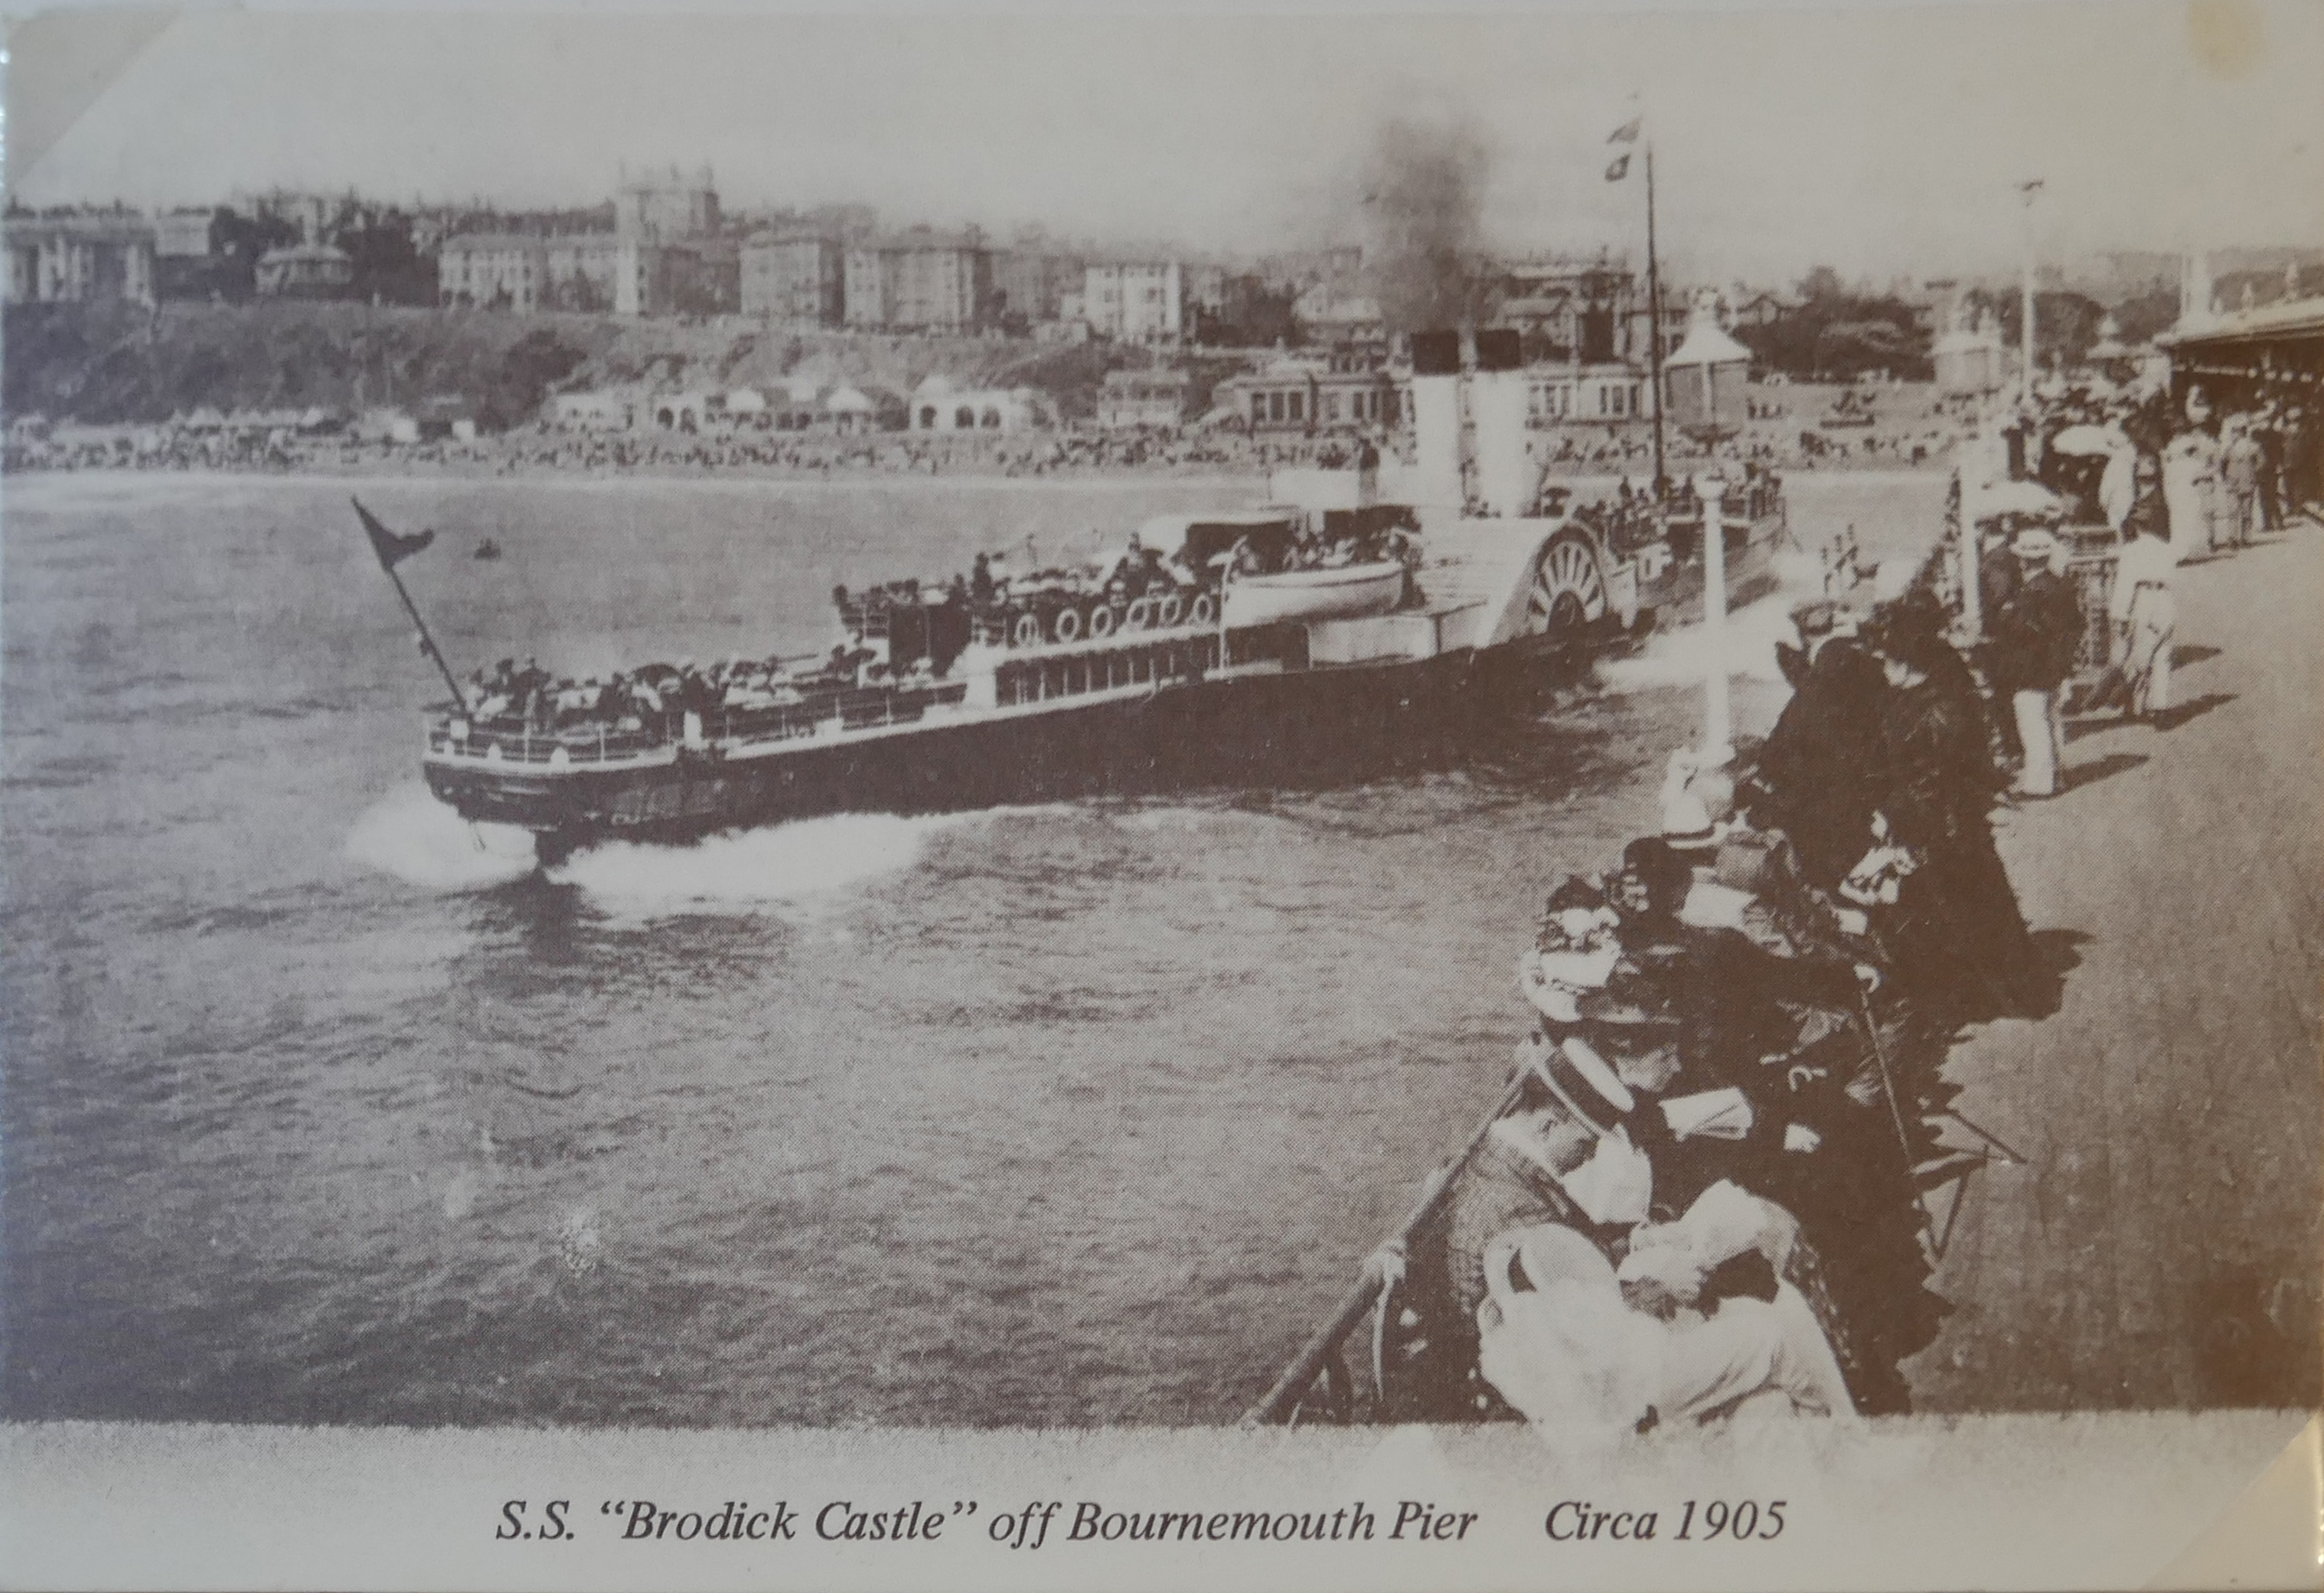 AN ALBUM OF BLACK AND WHITE PHOTOGRAPHIC POSTCARDS OF STEAM SHIPS Issued by Pamlin Prints, including - Image 2 of 10